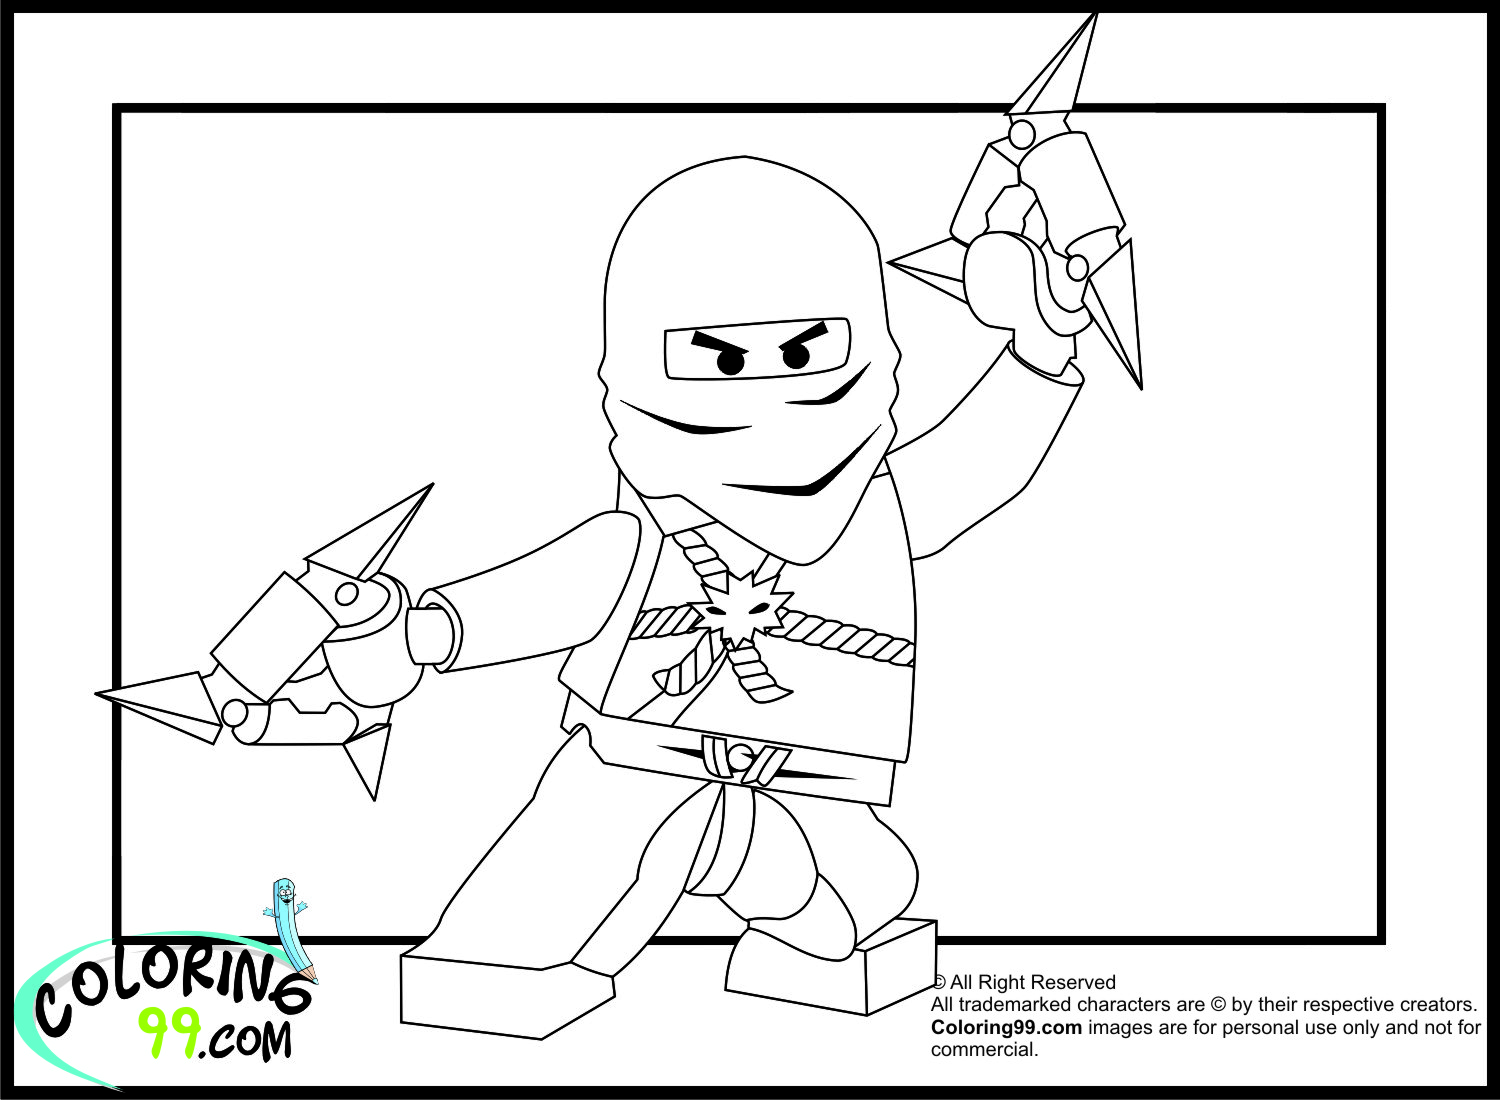 zane ninjago coloring pages - photo#11